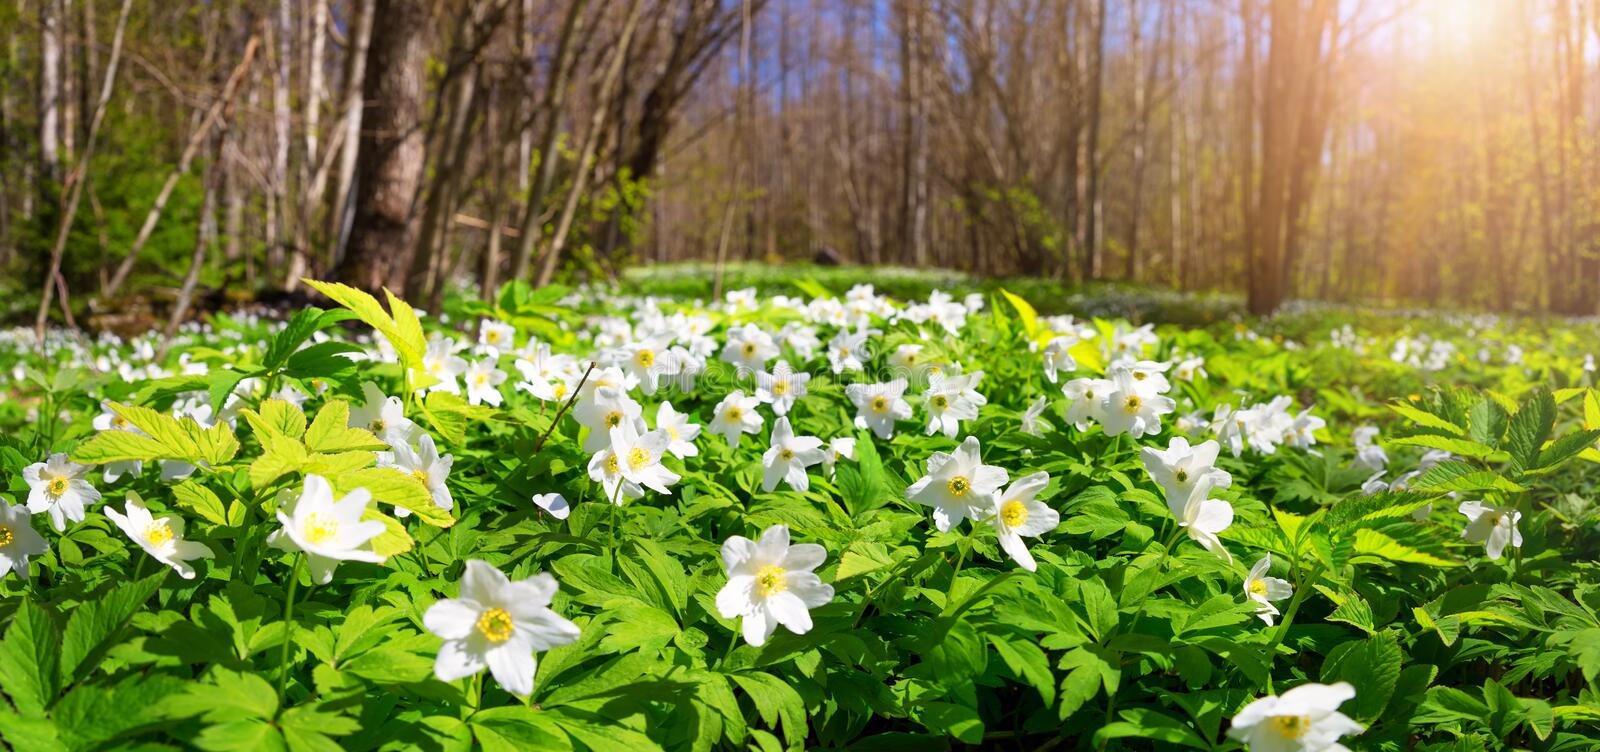 Wood with spring flowers royalty free stock photography